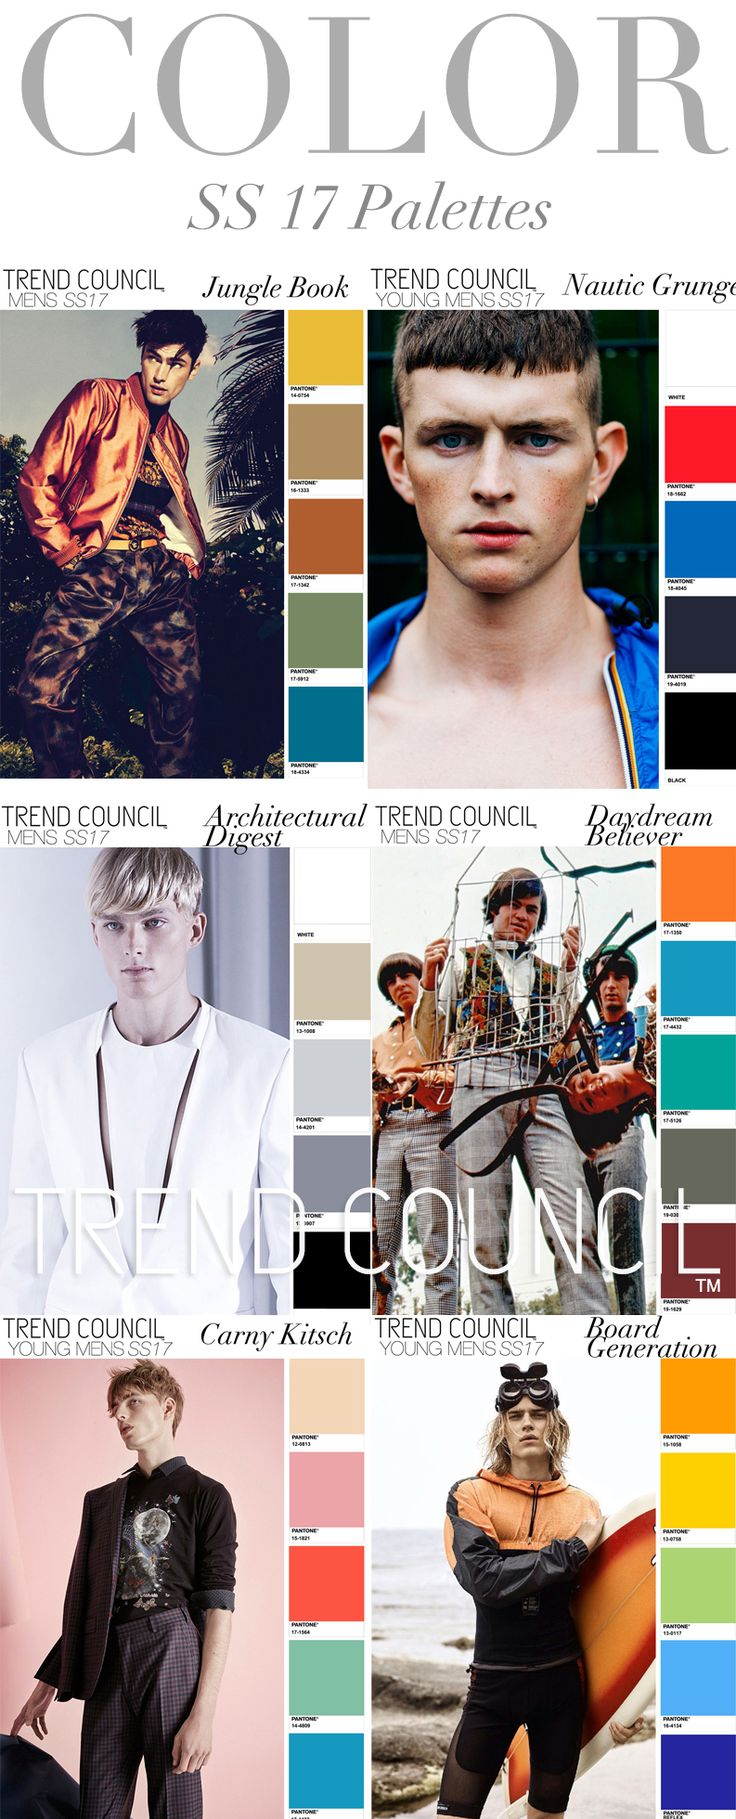 TREND COUNCIL S/S 2017 MEN'S COLOR PALETTES